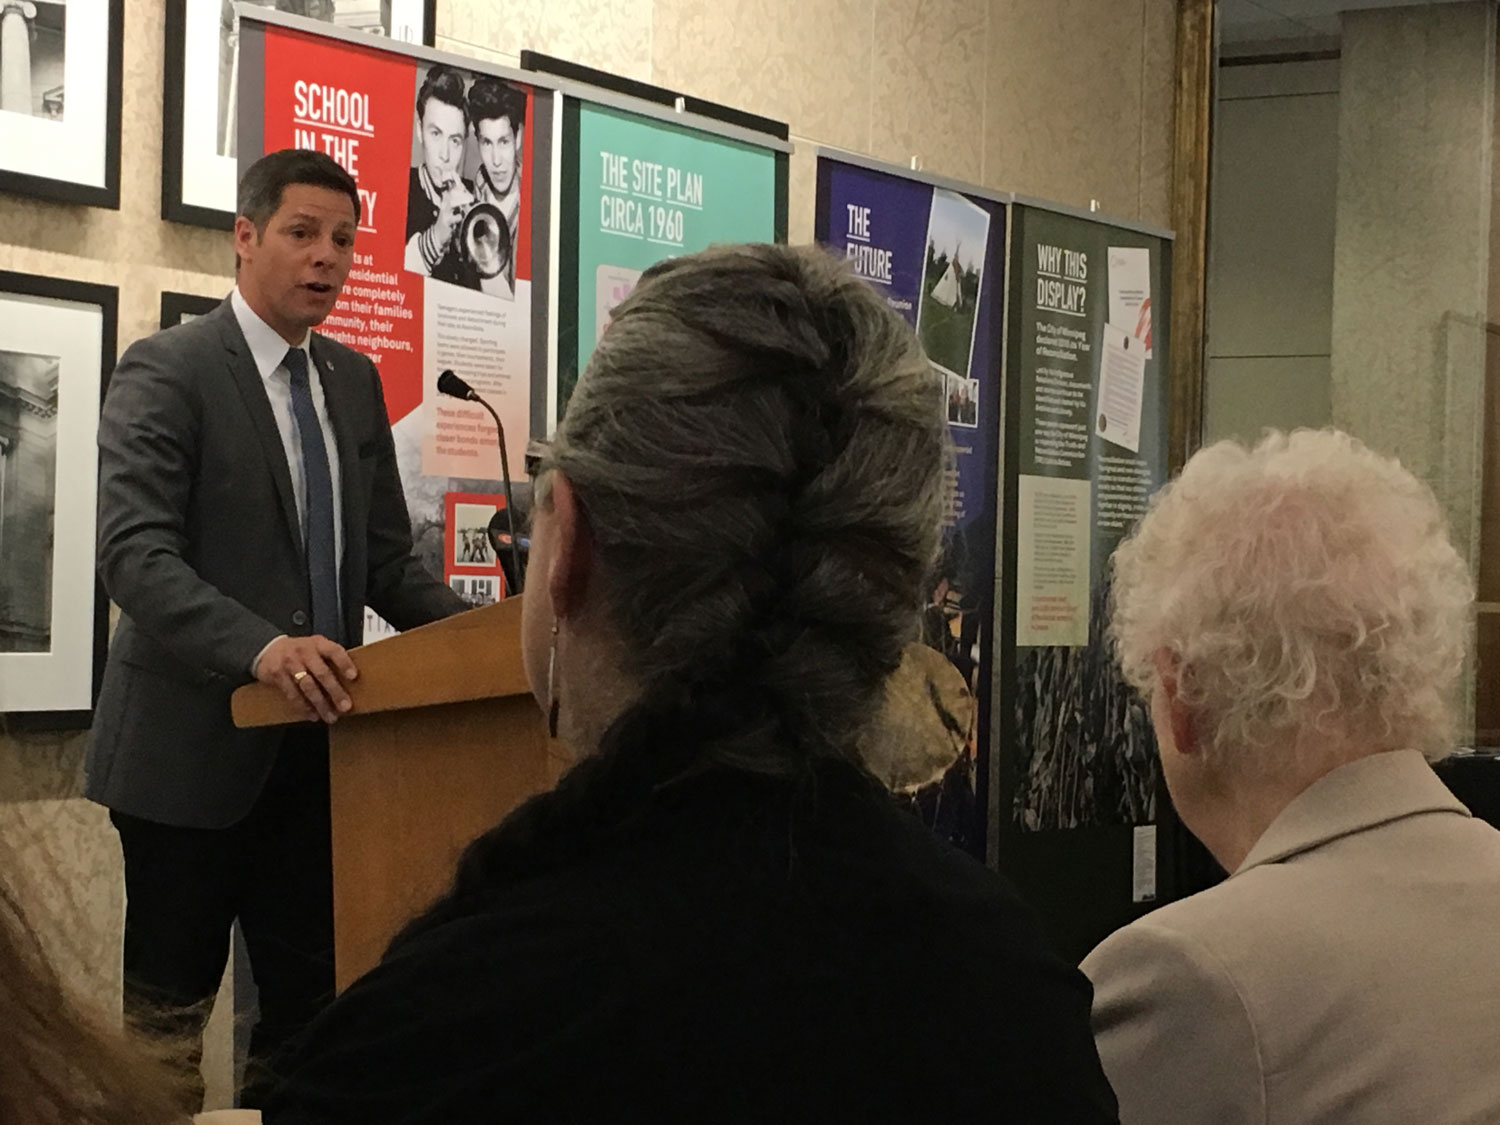 Mayor Brian Bowman gives the opening speech at City Hall.